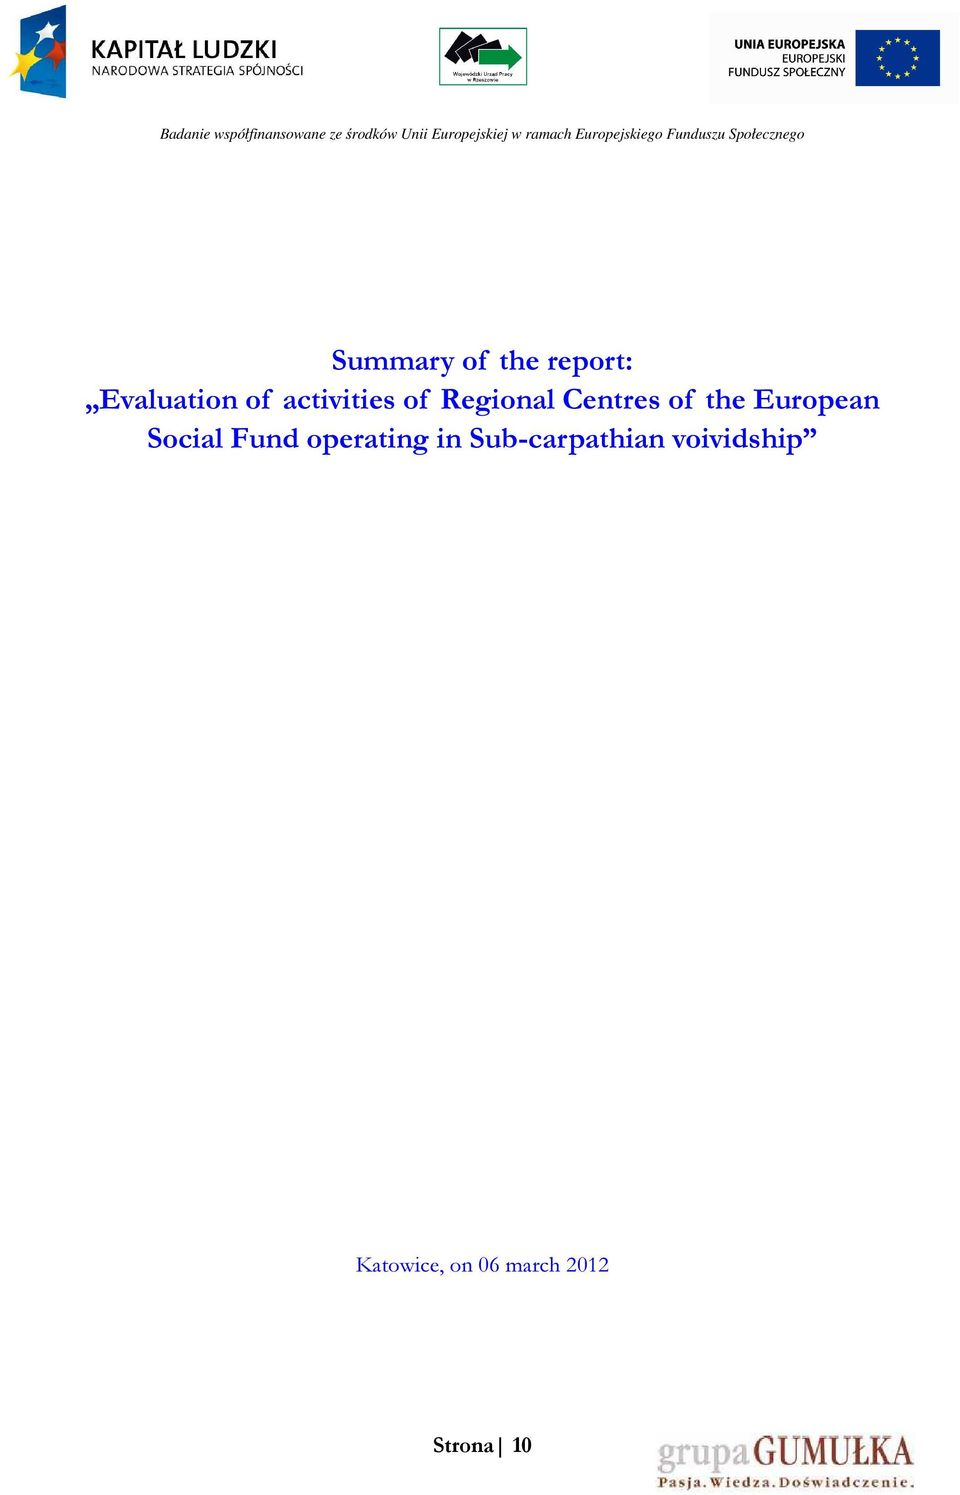 European Social Fund operating in